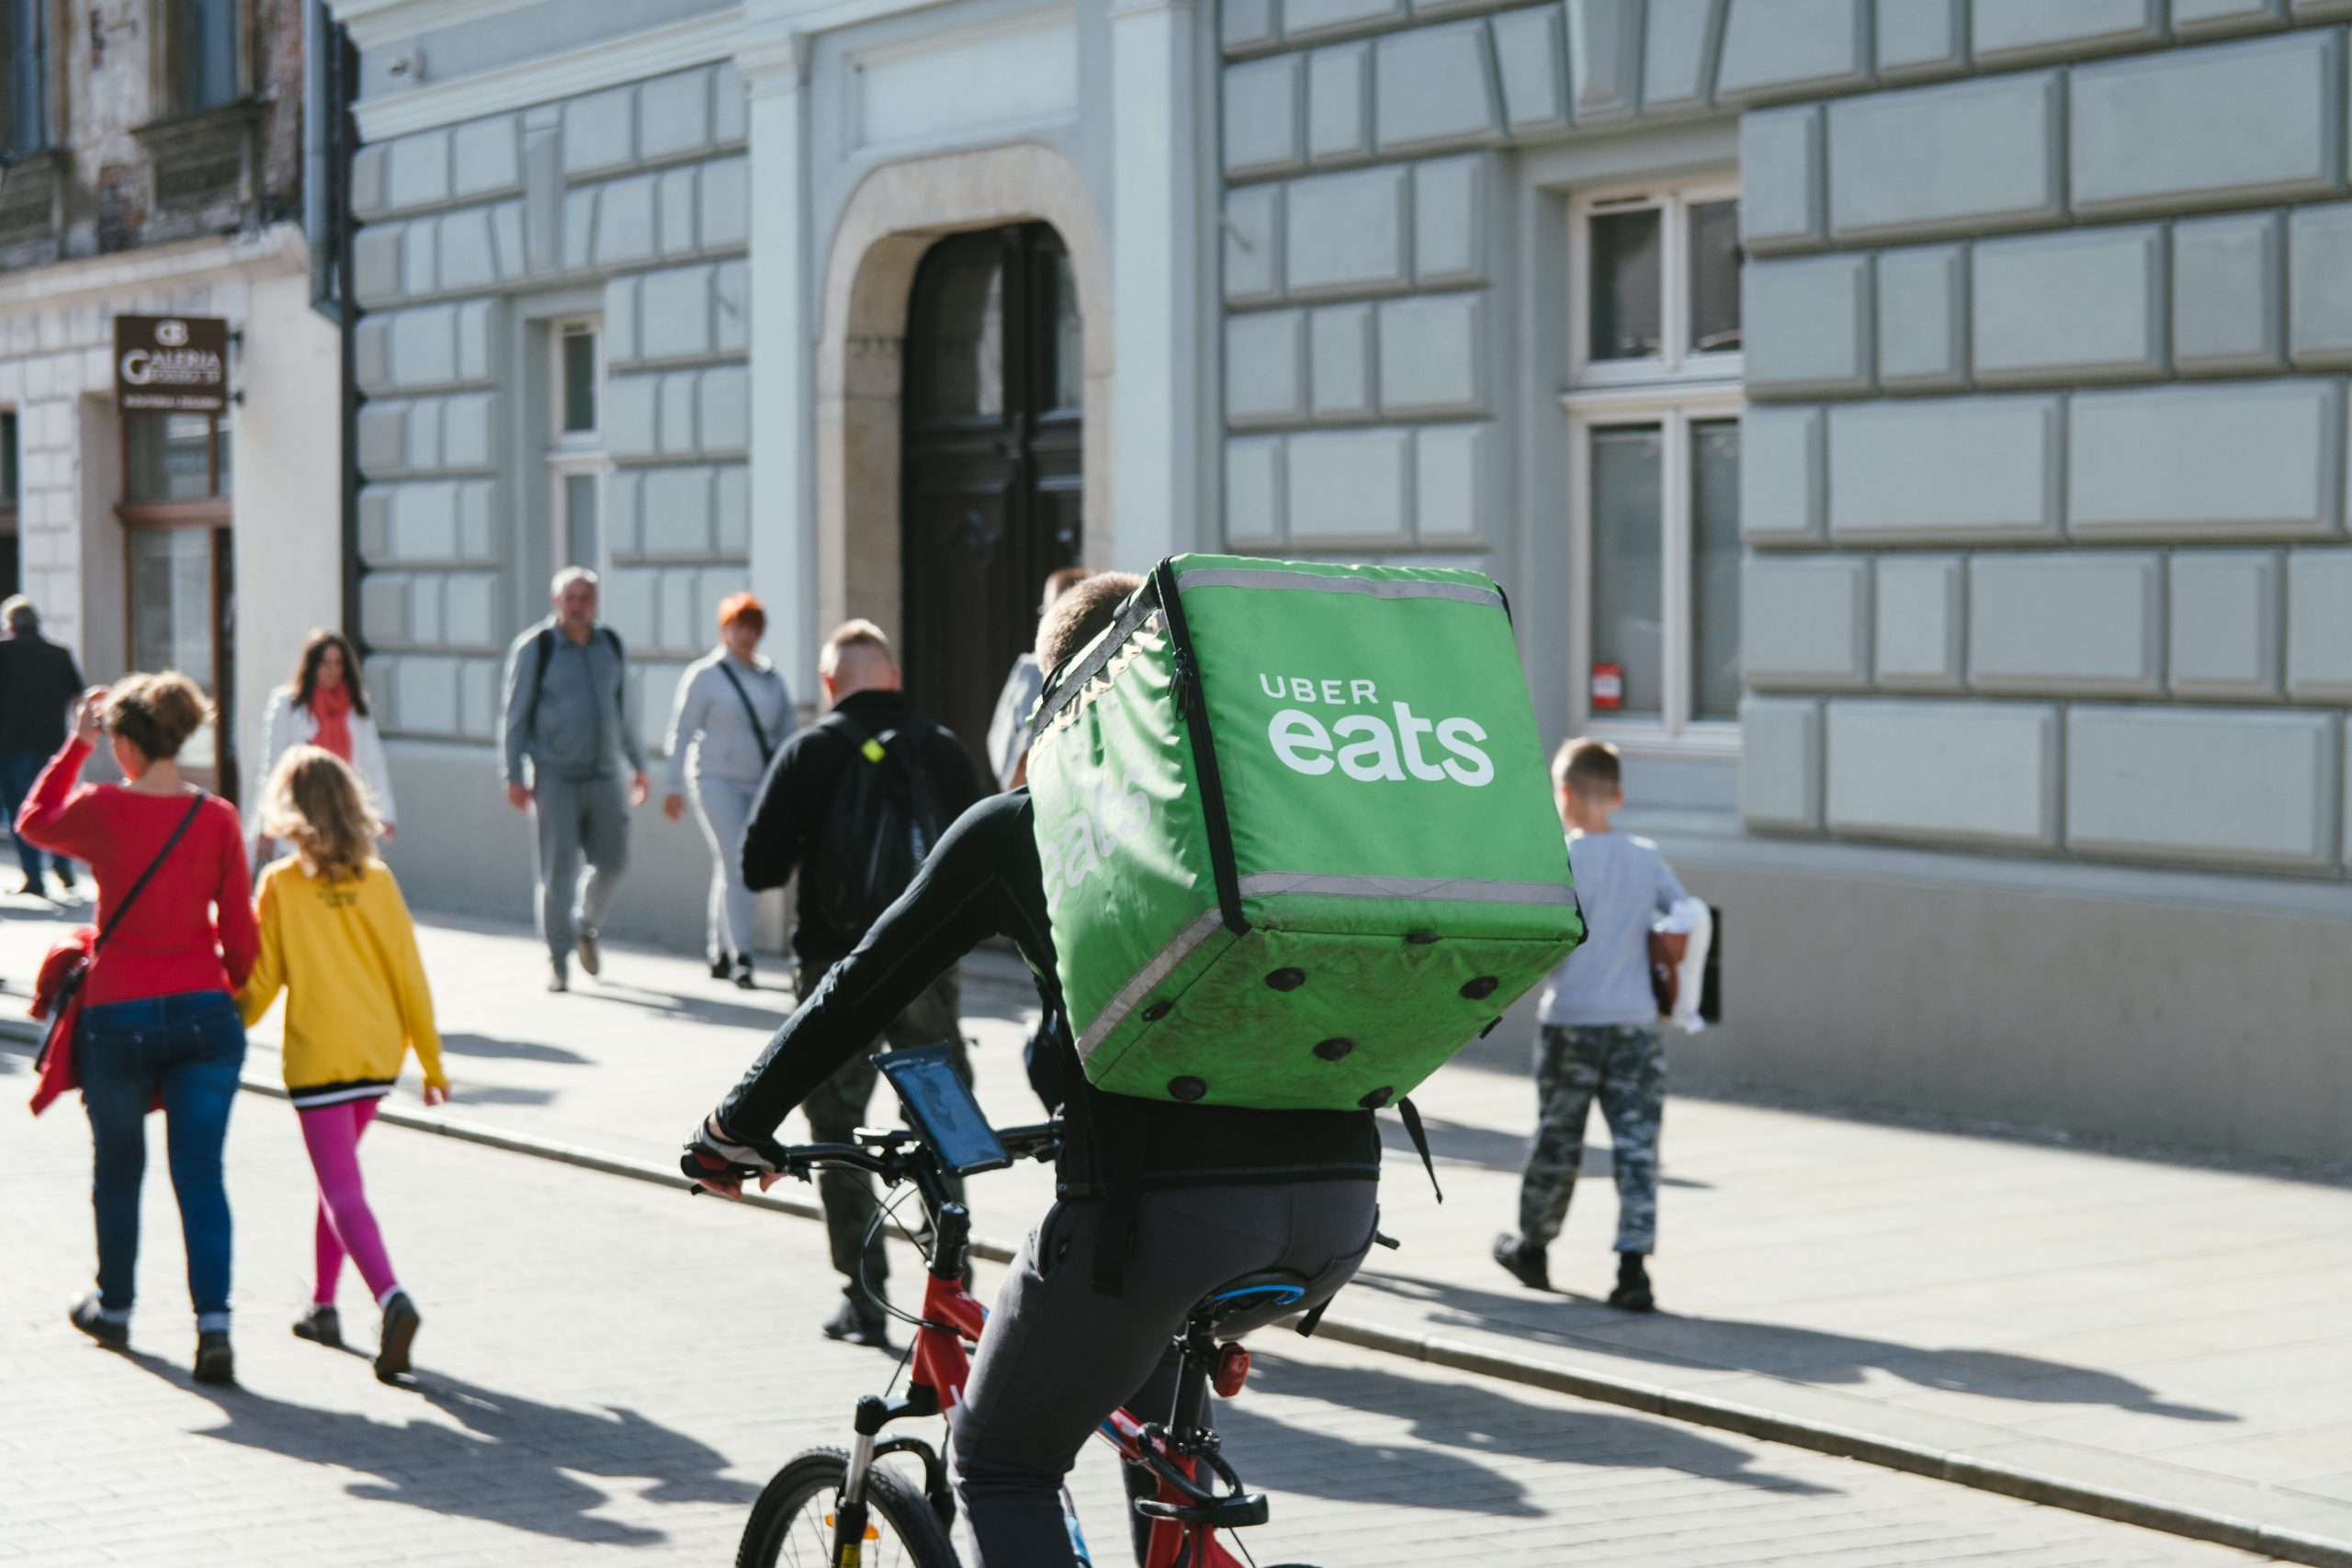 An uber eats driver cycles away from the camera on a street with pedestrians in the background